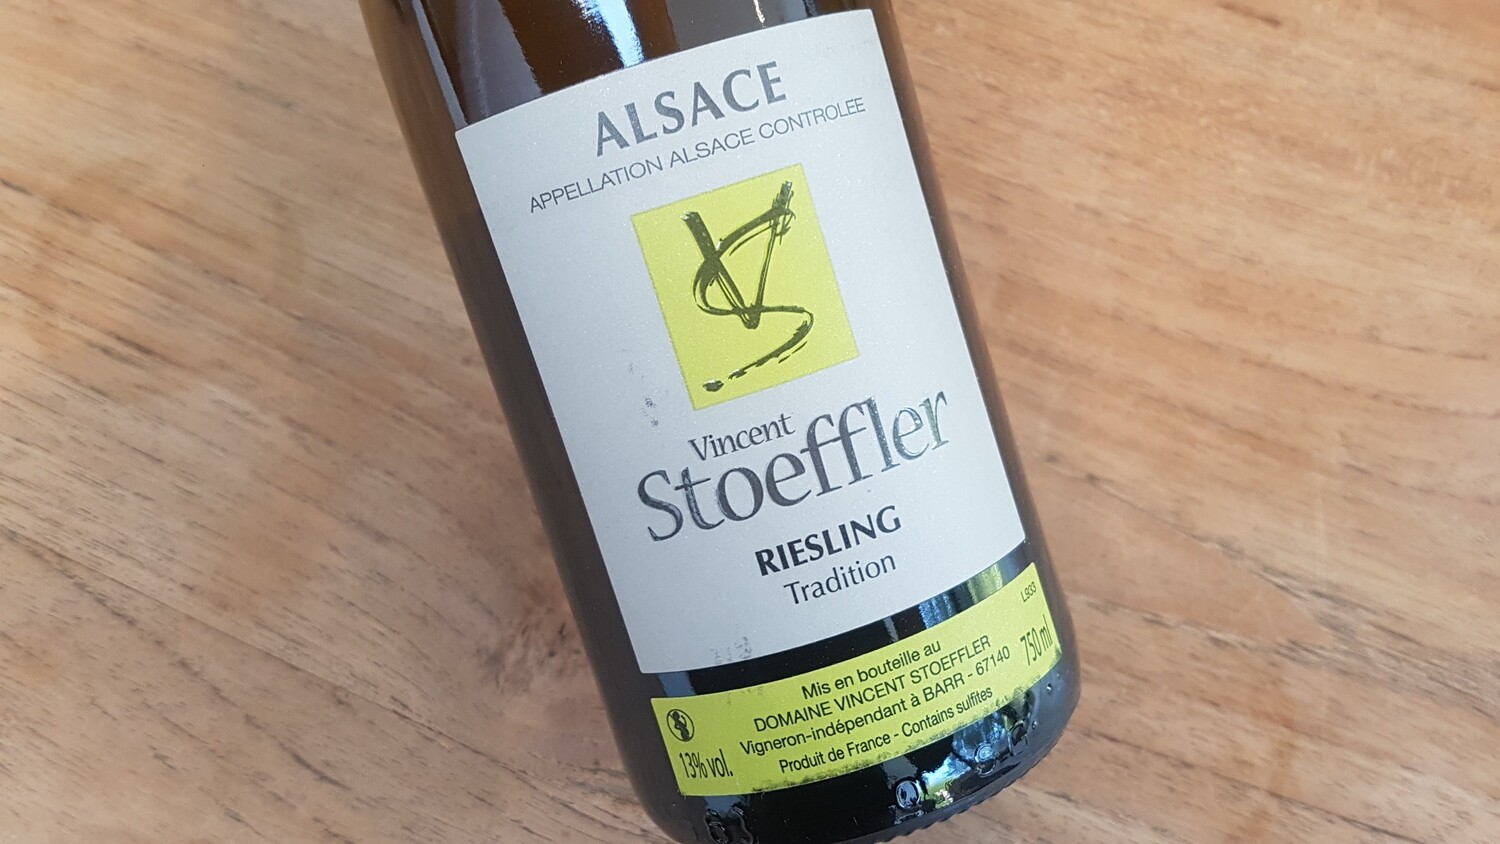 Domaine Stoeffler Riesling Tradition 2019 | 6 x 75cl